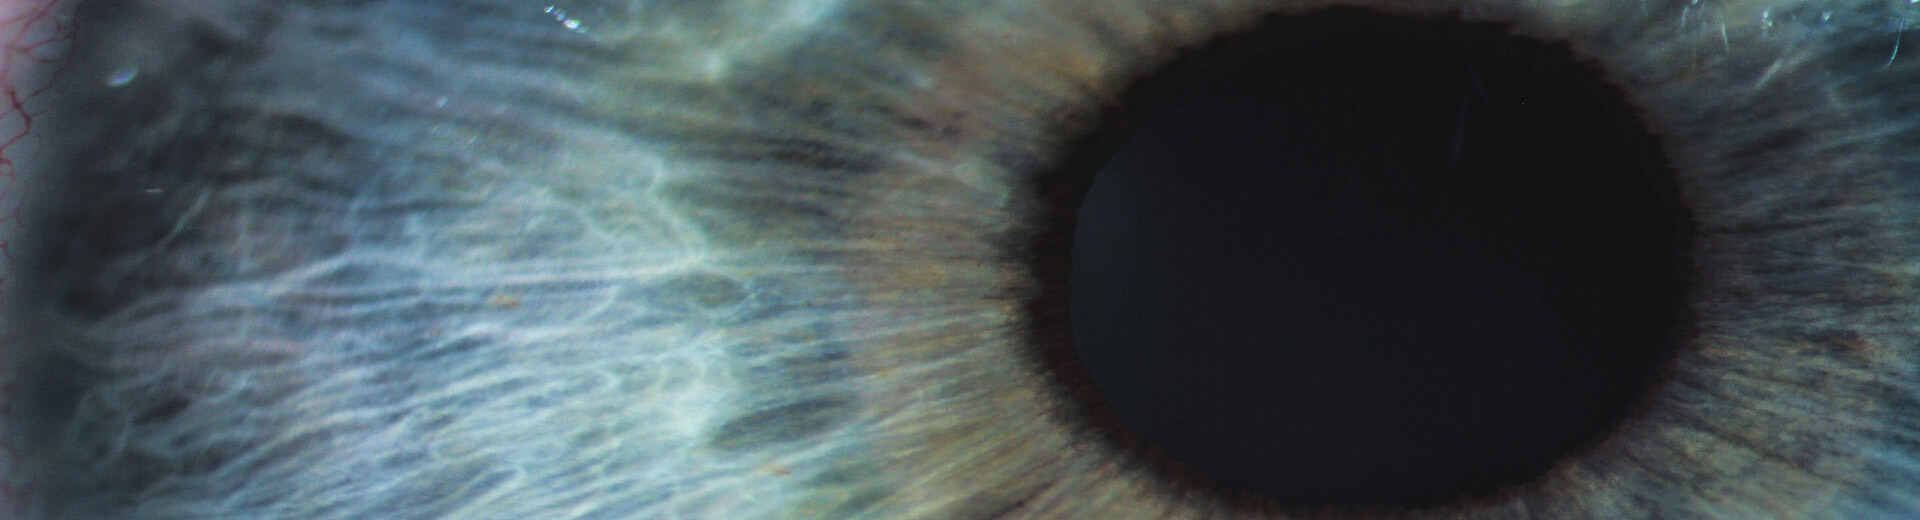 causes of low vision are you at risk